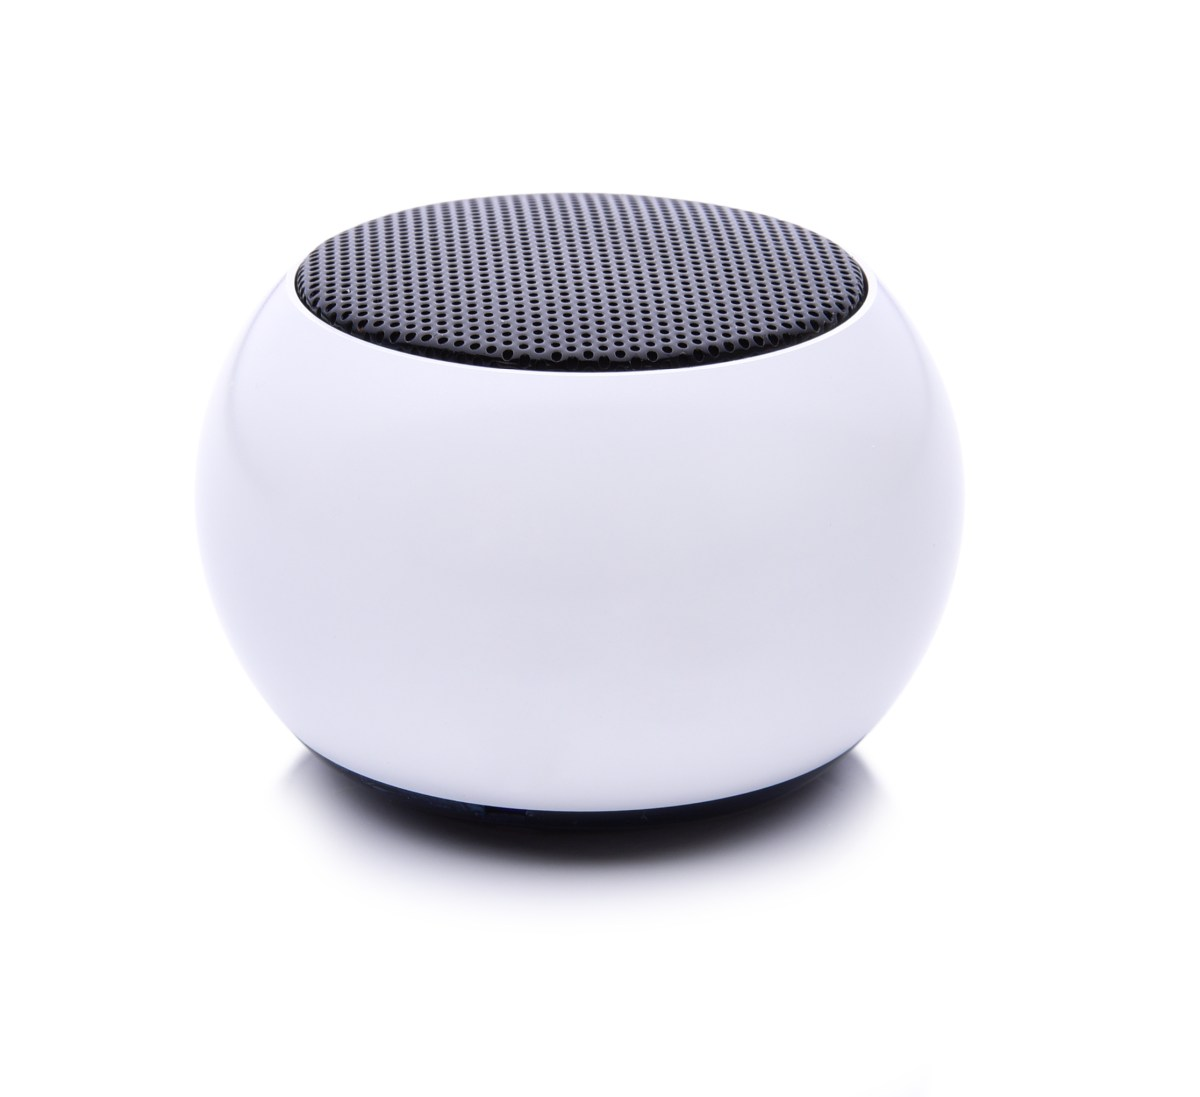 https://dedra.blob.core.windows.net/cms/ContentItems/26607_mini-speaker-reproduktor-kovovy-bezdratovy-bluetooth/images/el24381-01.jpg